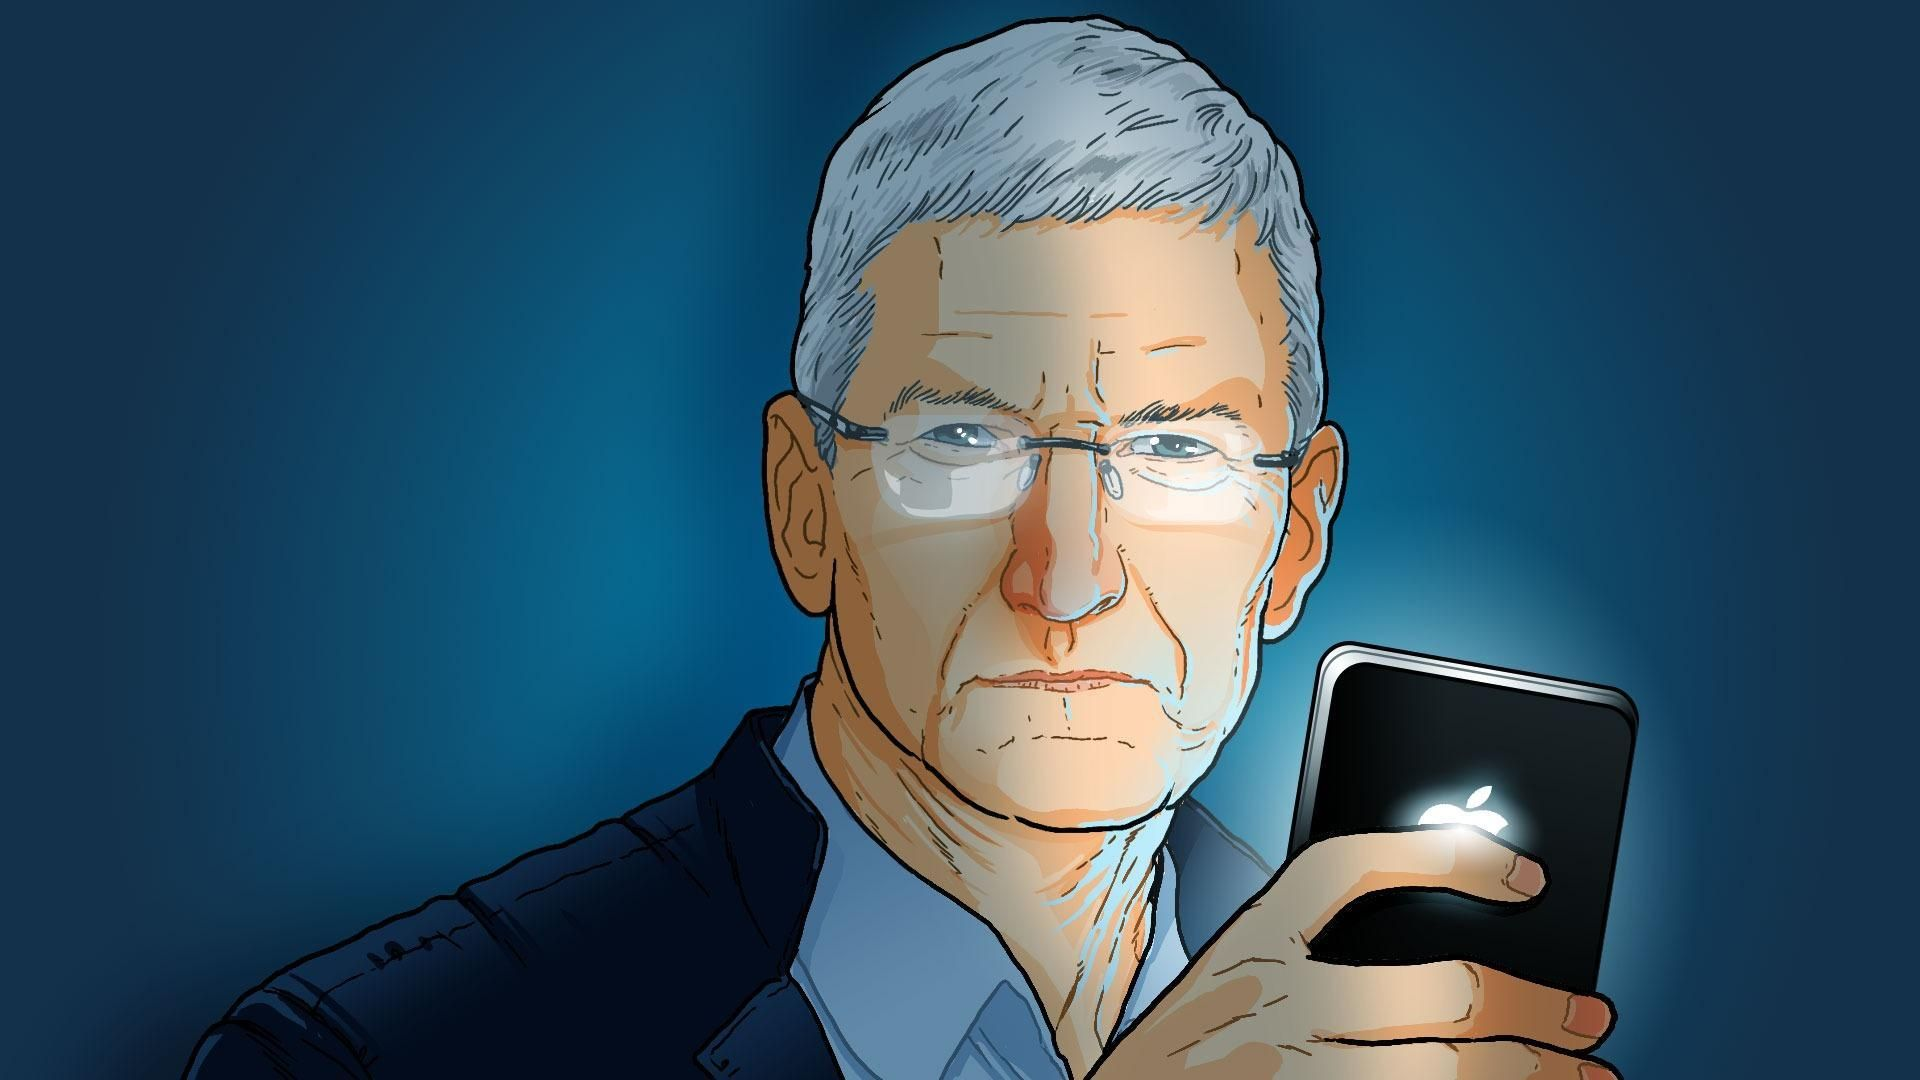 1920x1080 - Tim Cook Wallpapers 13